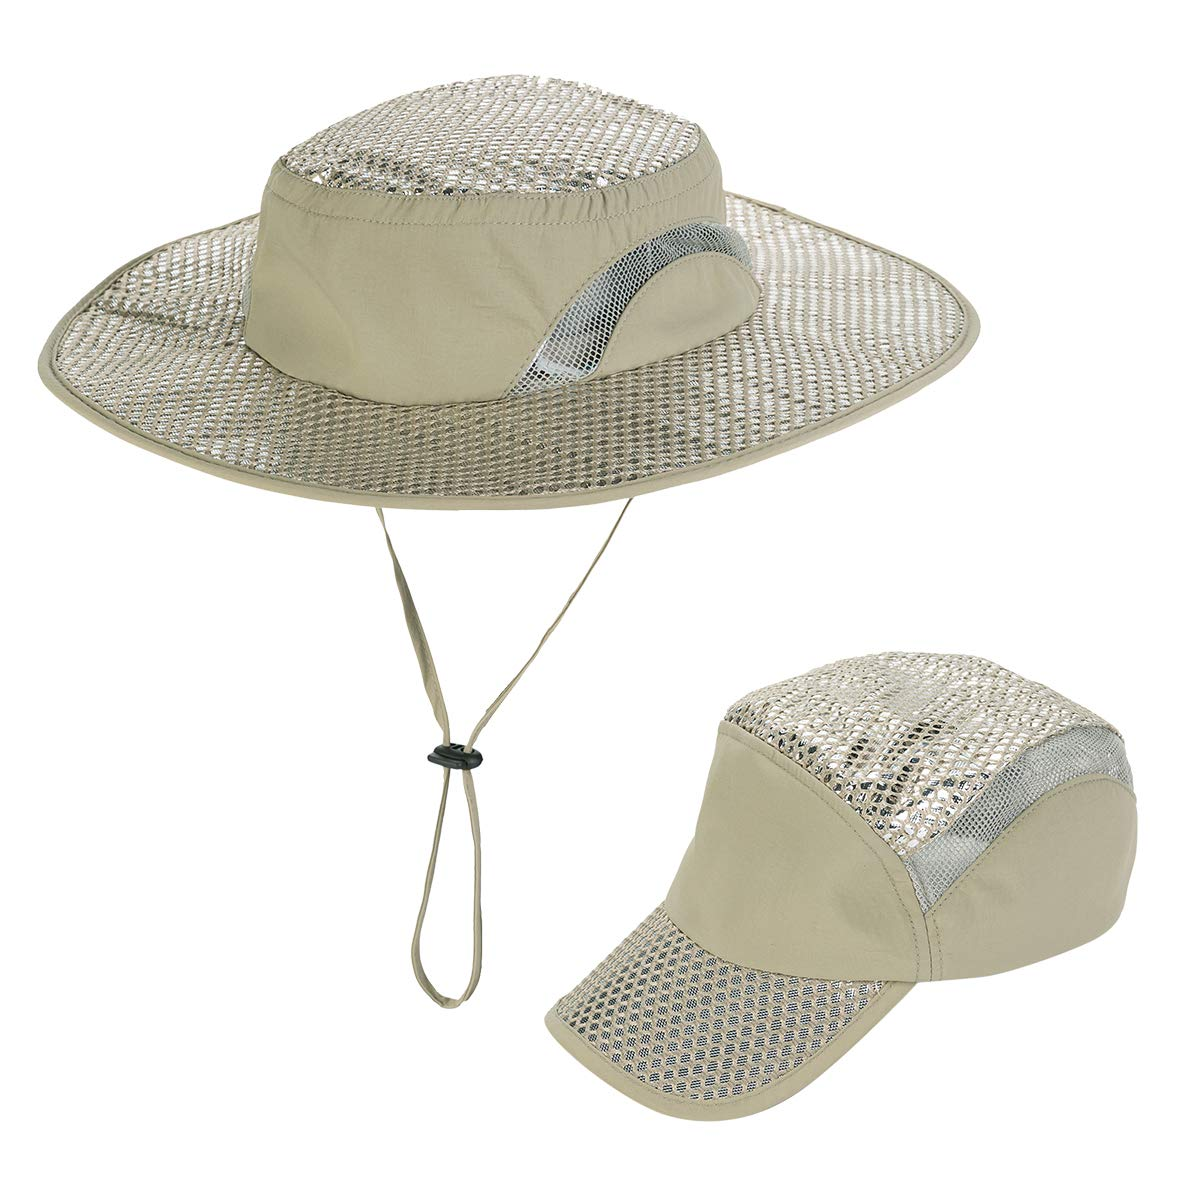 YR.Lover Arctic Cooling Hat Summer Fishing Hat Breathable Cap Outdoor UV Protection Hat for Men Women